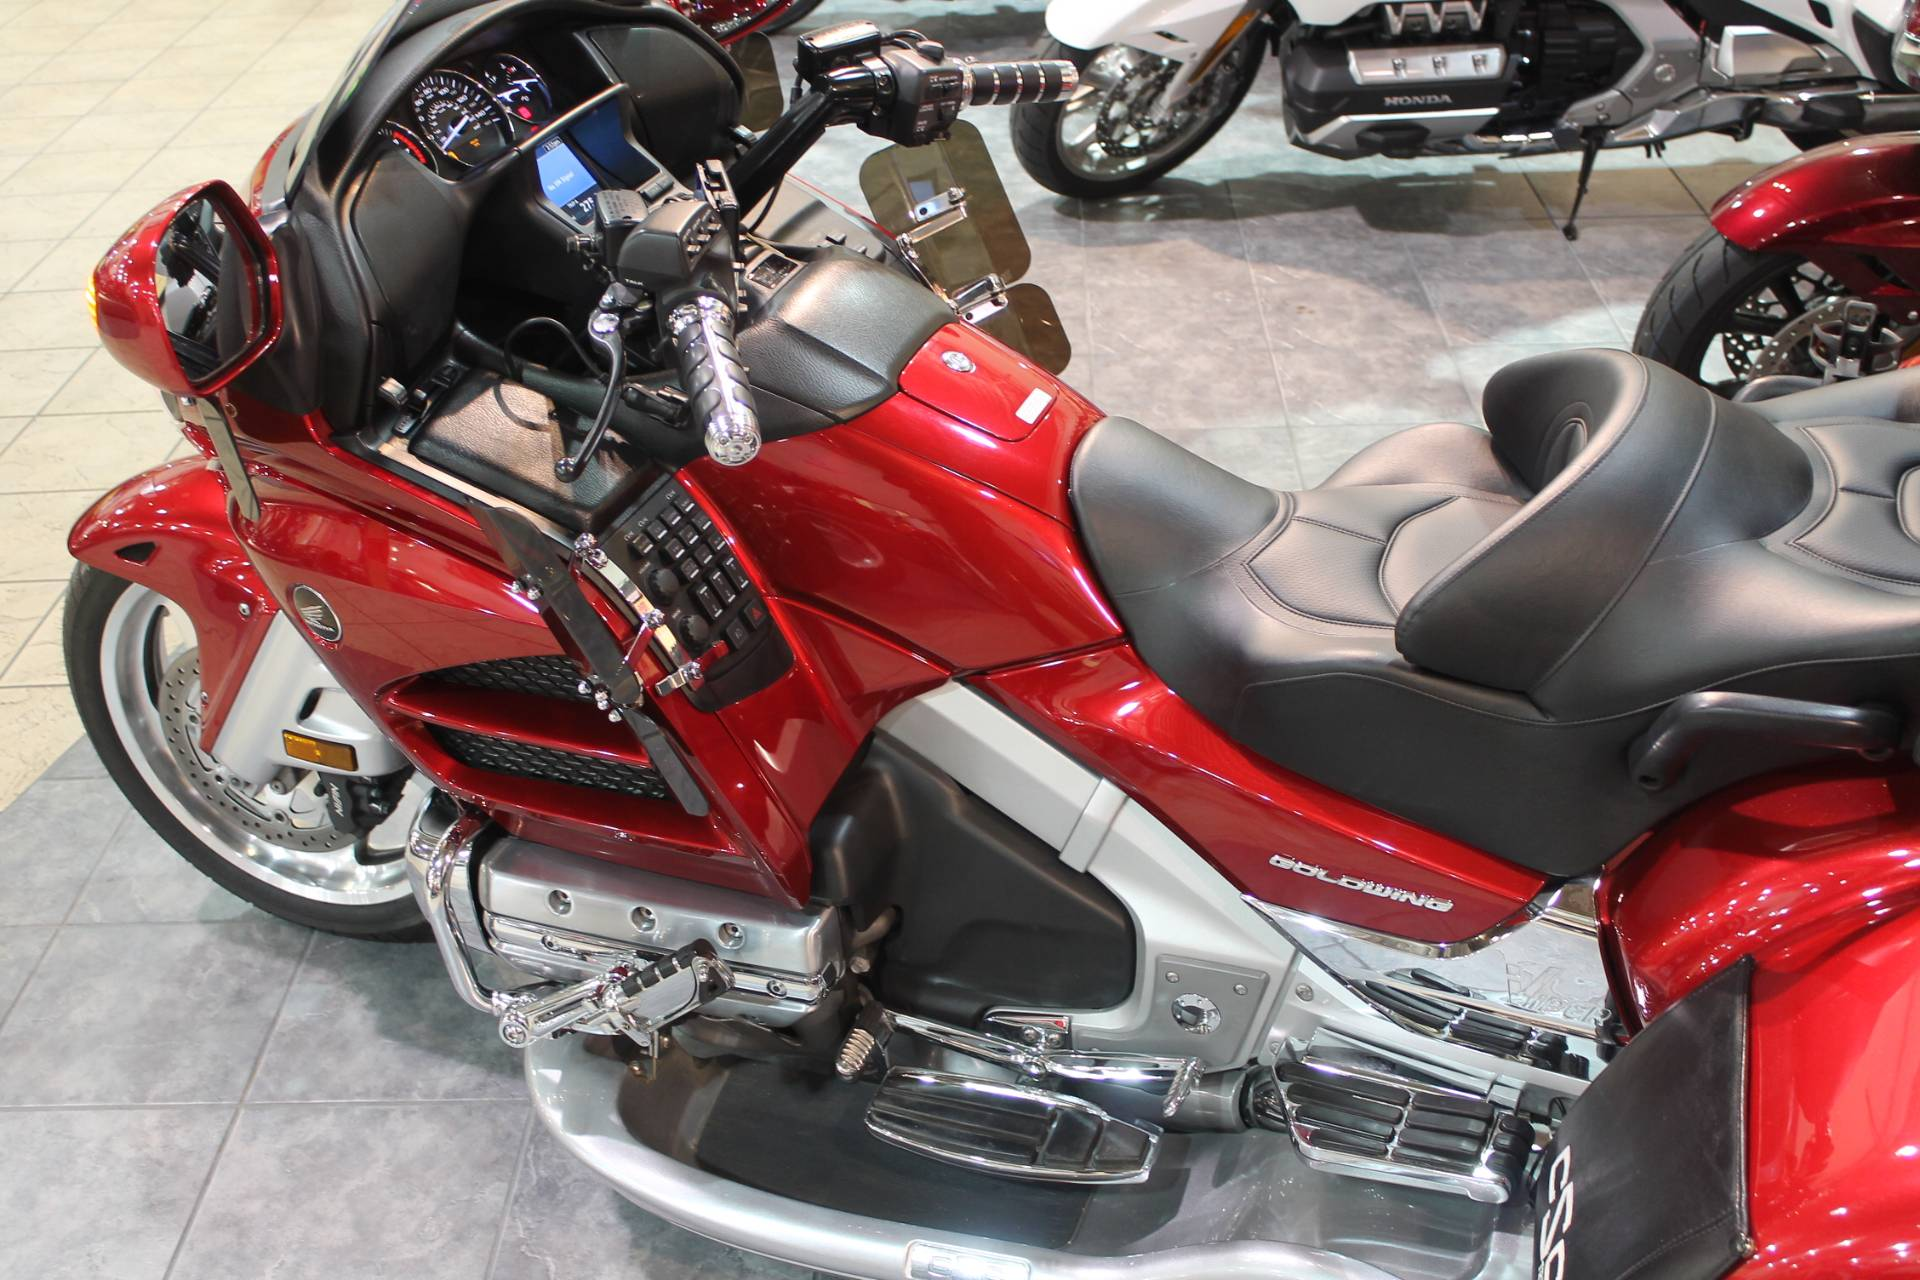 2014 Honda GL1800 Goldwing California Side Car Viper 4